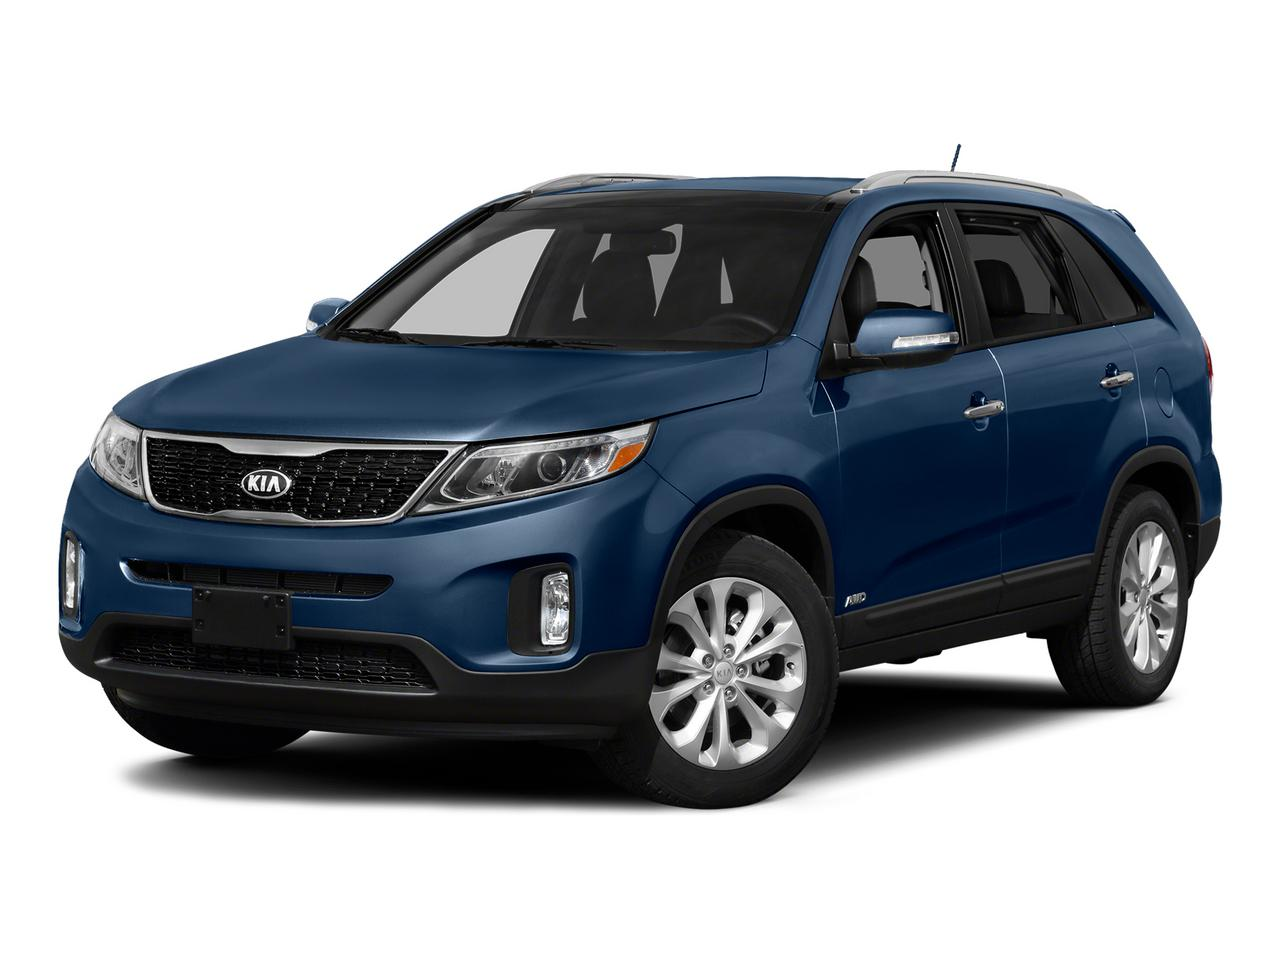 2015 Kia Sorento Vehicle Photo in Concord, NC 28027